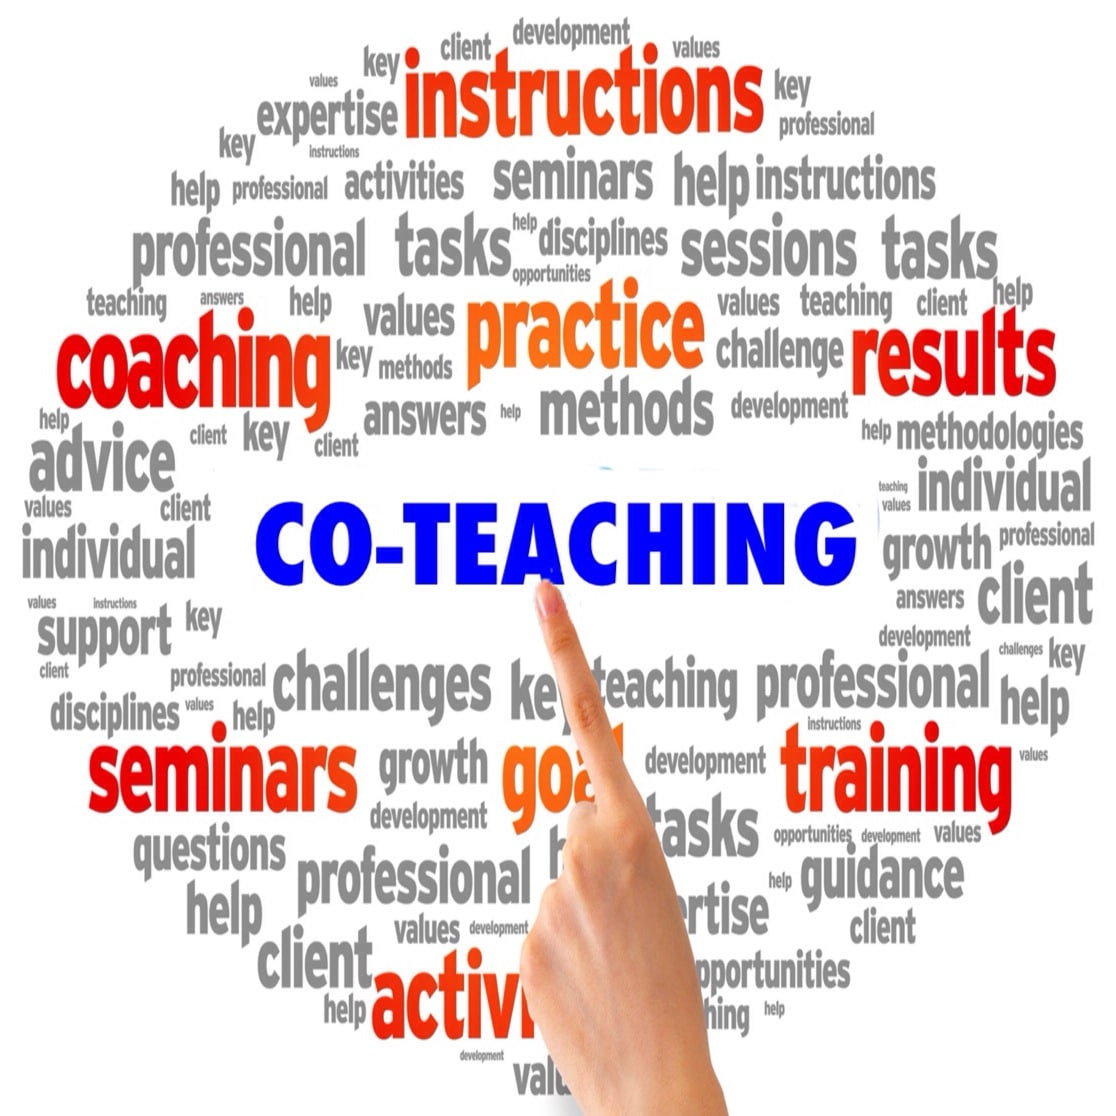 Co-teaching Coaching, Seminars, Workshops, and Conference Sessions